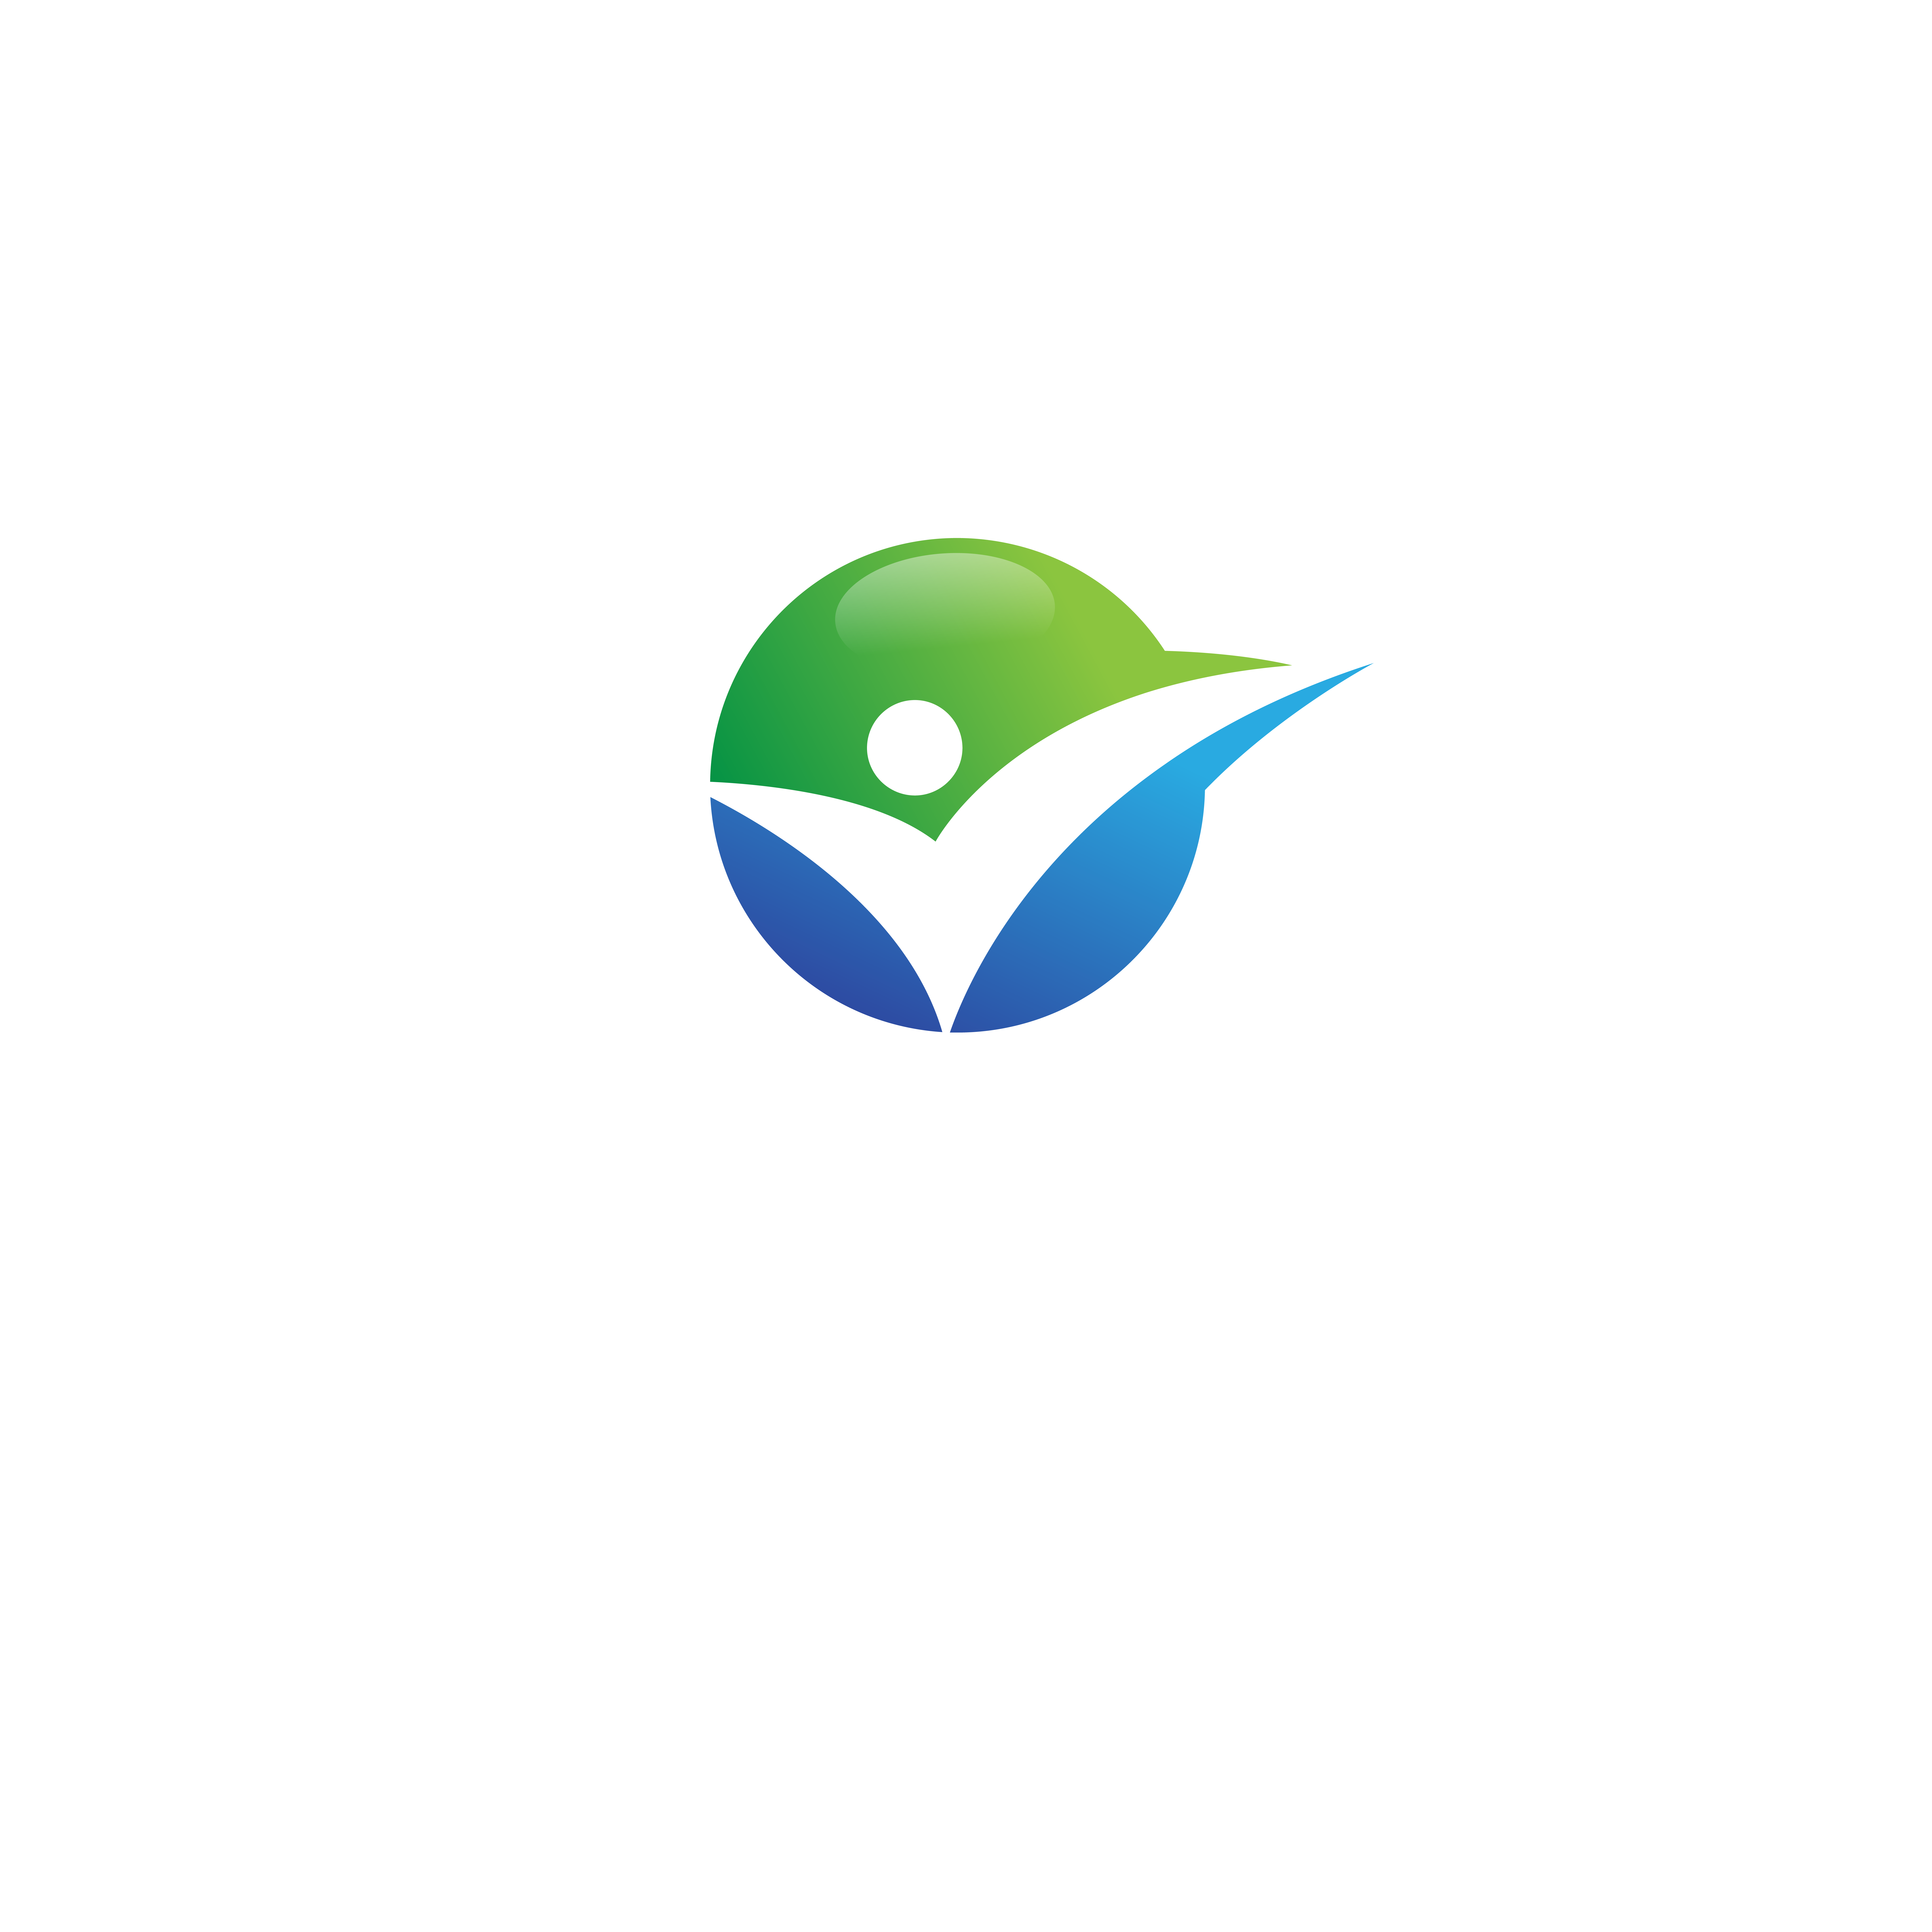 Start up company looking for original logo